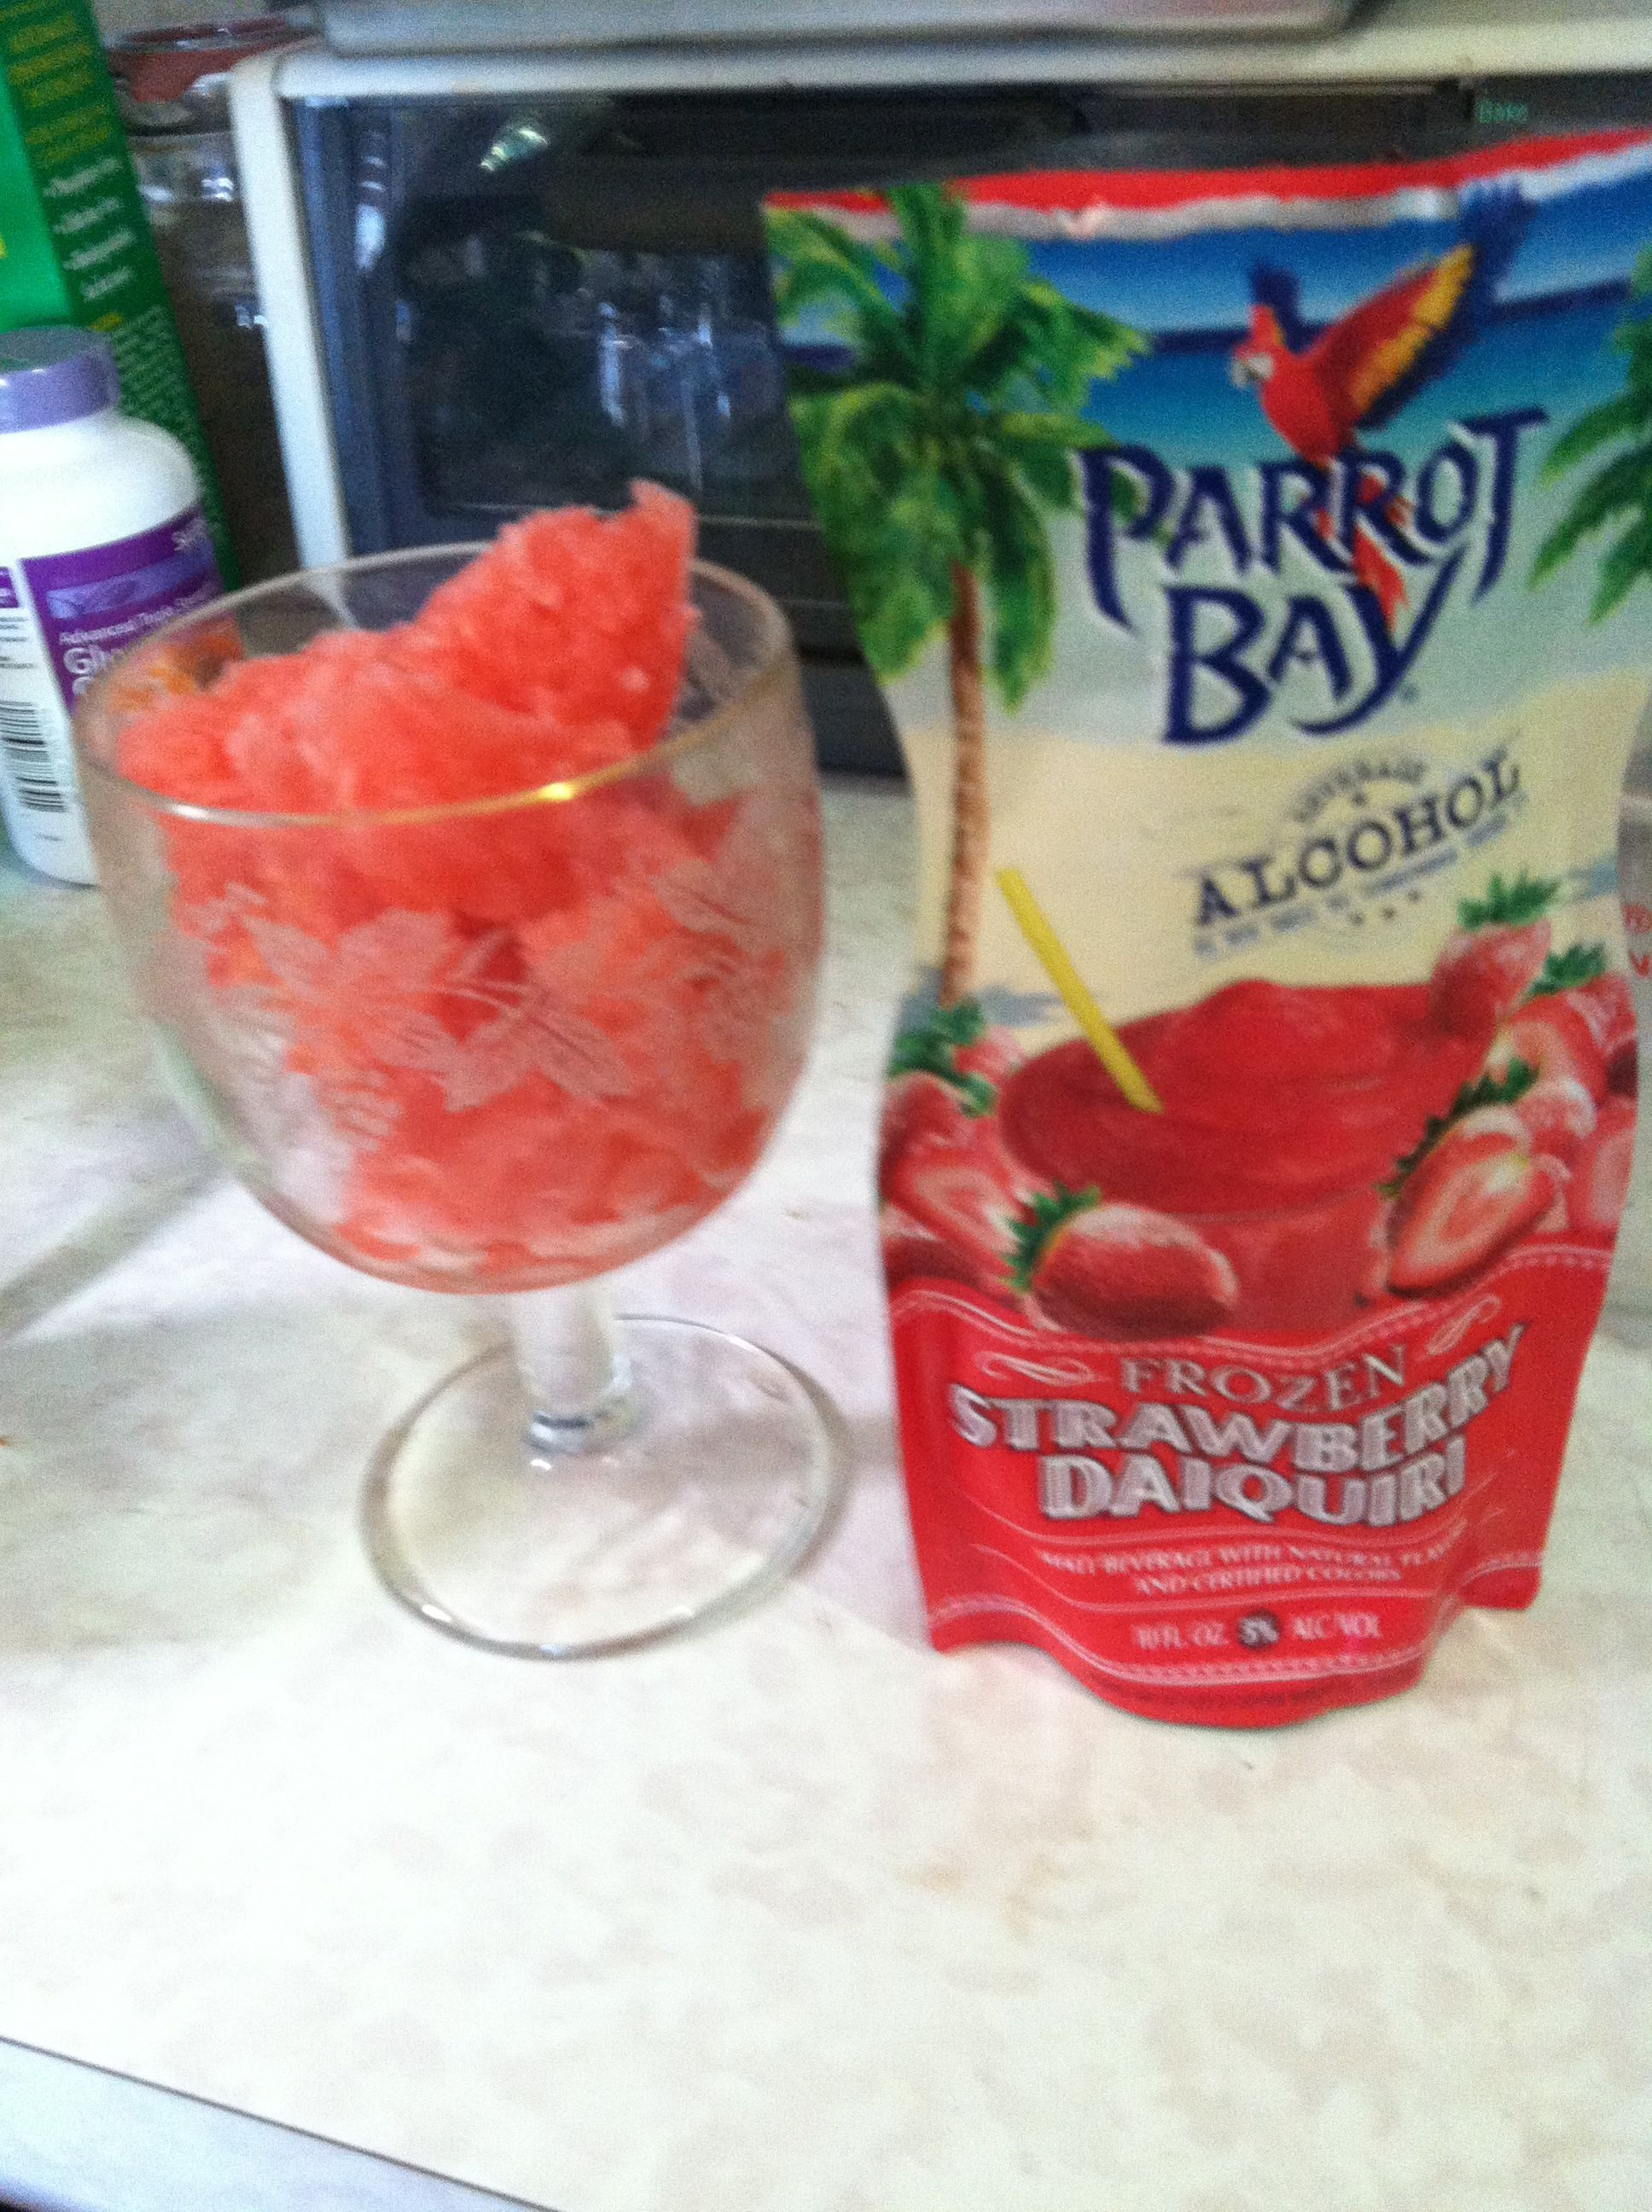 Picture of the Parrot Bay daquiri in a glass